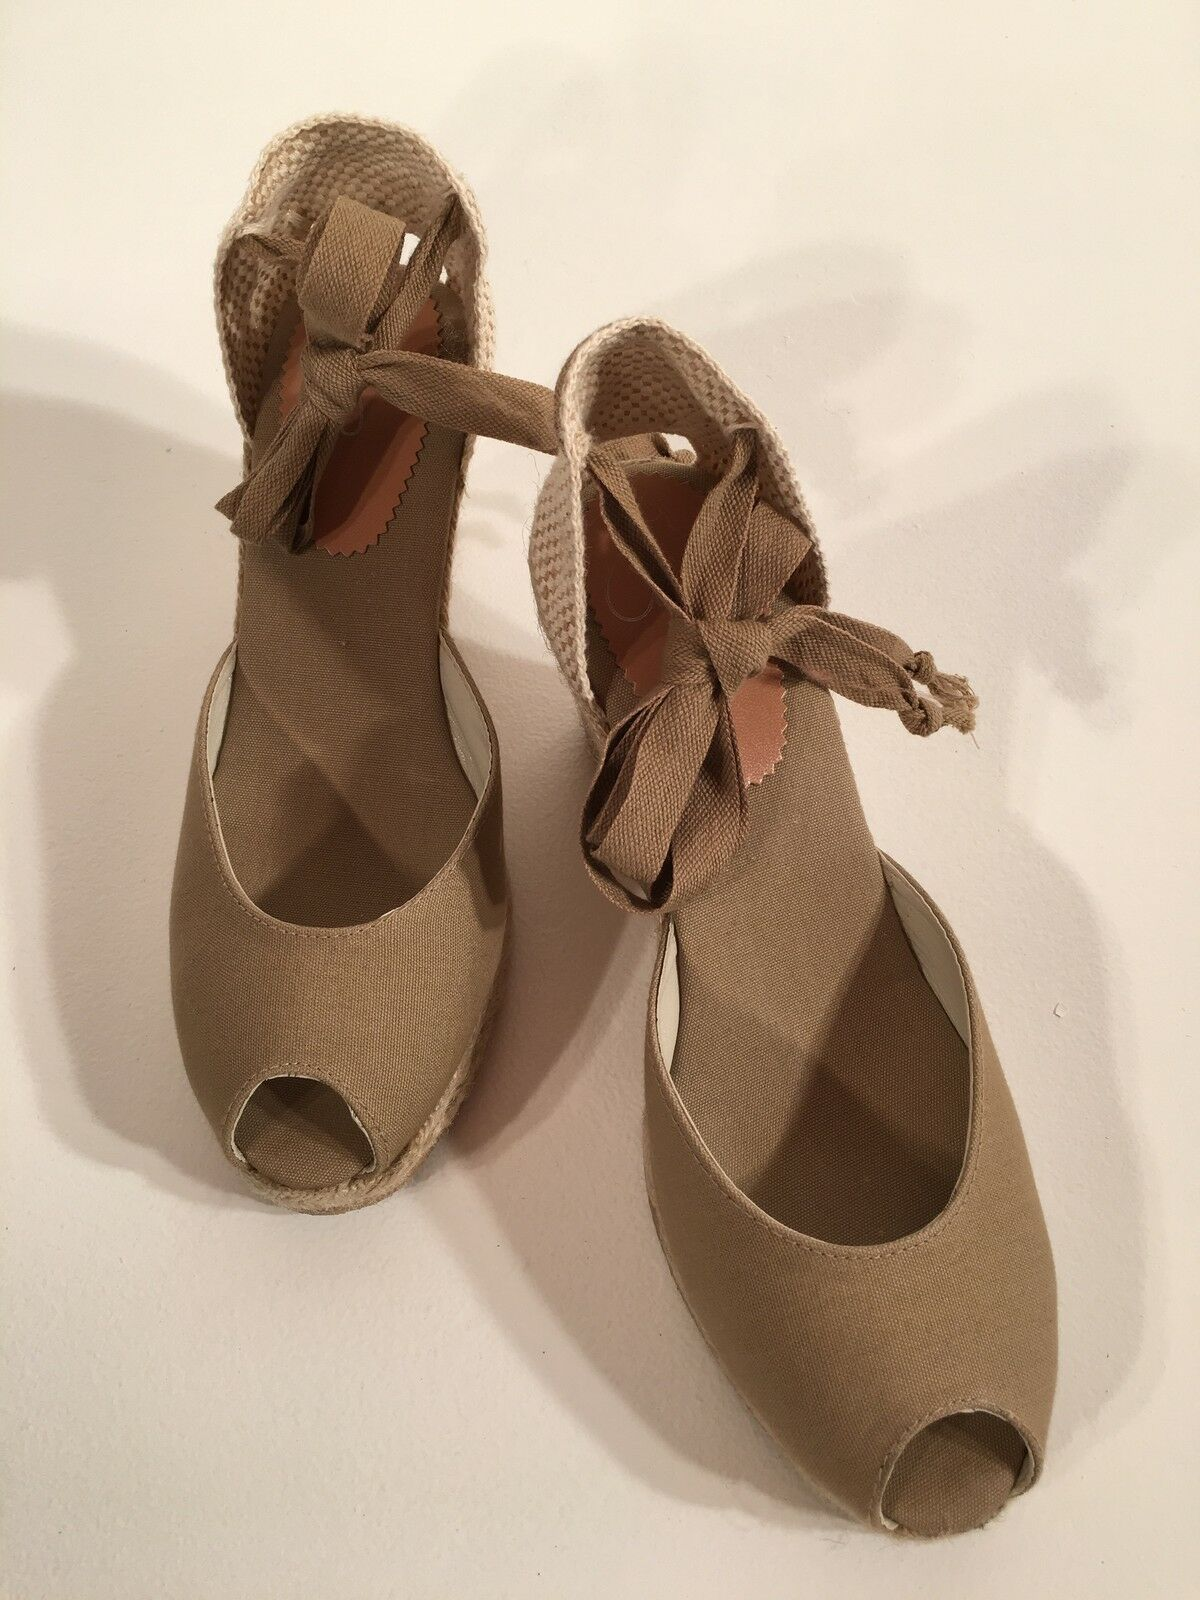 Women's New Peep Toe With Beige Tie Ankle Espadrilles Size 9 M